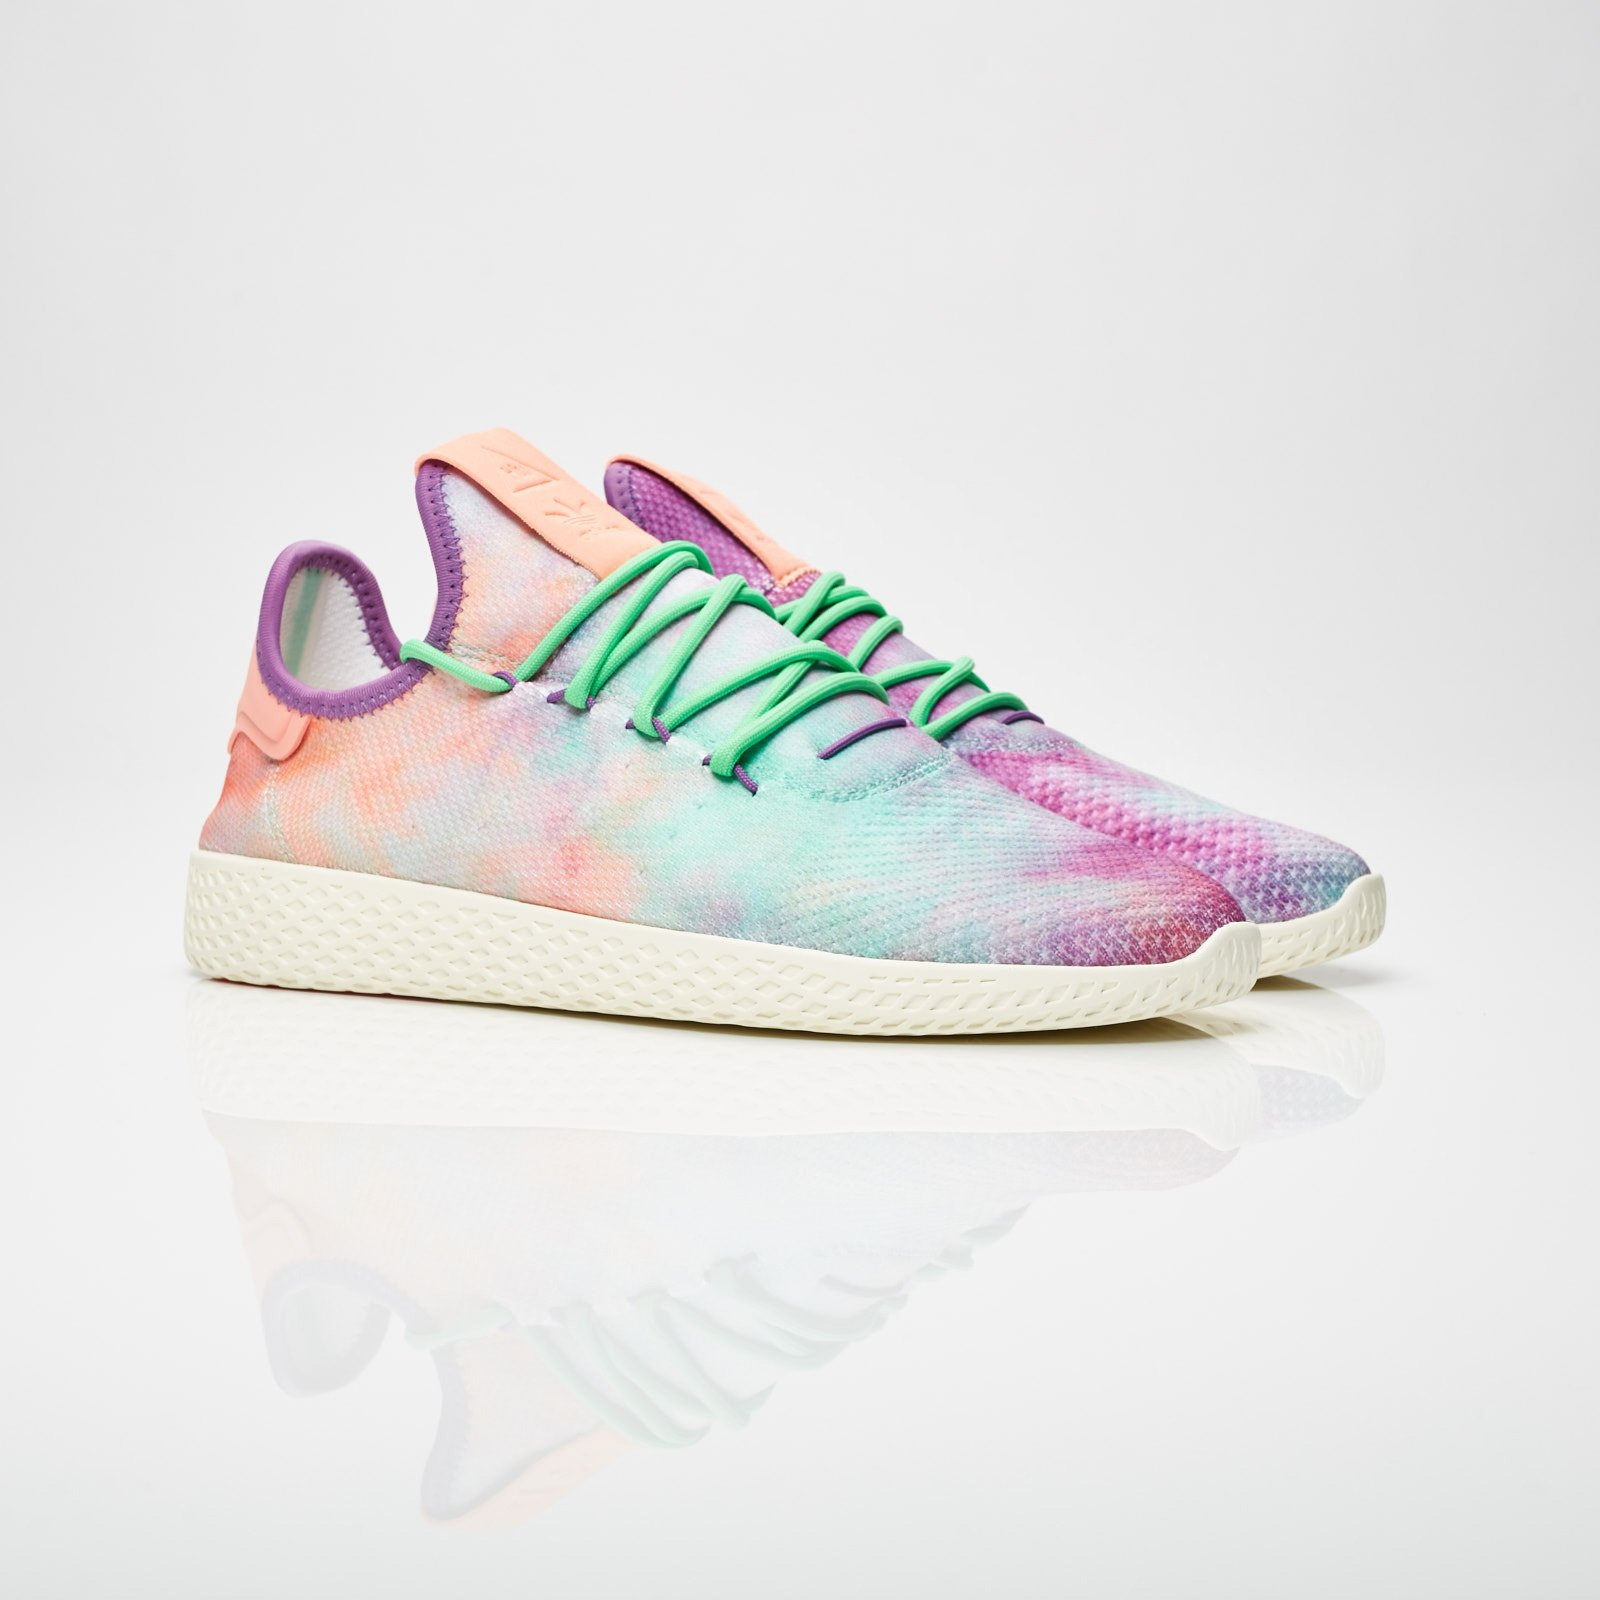 722af80f677a adidas Pharrell Williams HU Holi Tennis Hu MC - Ac7366 ...